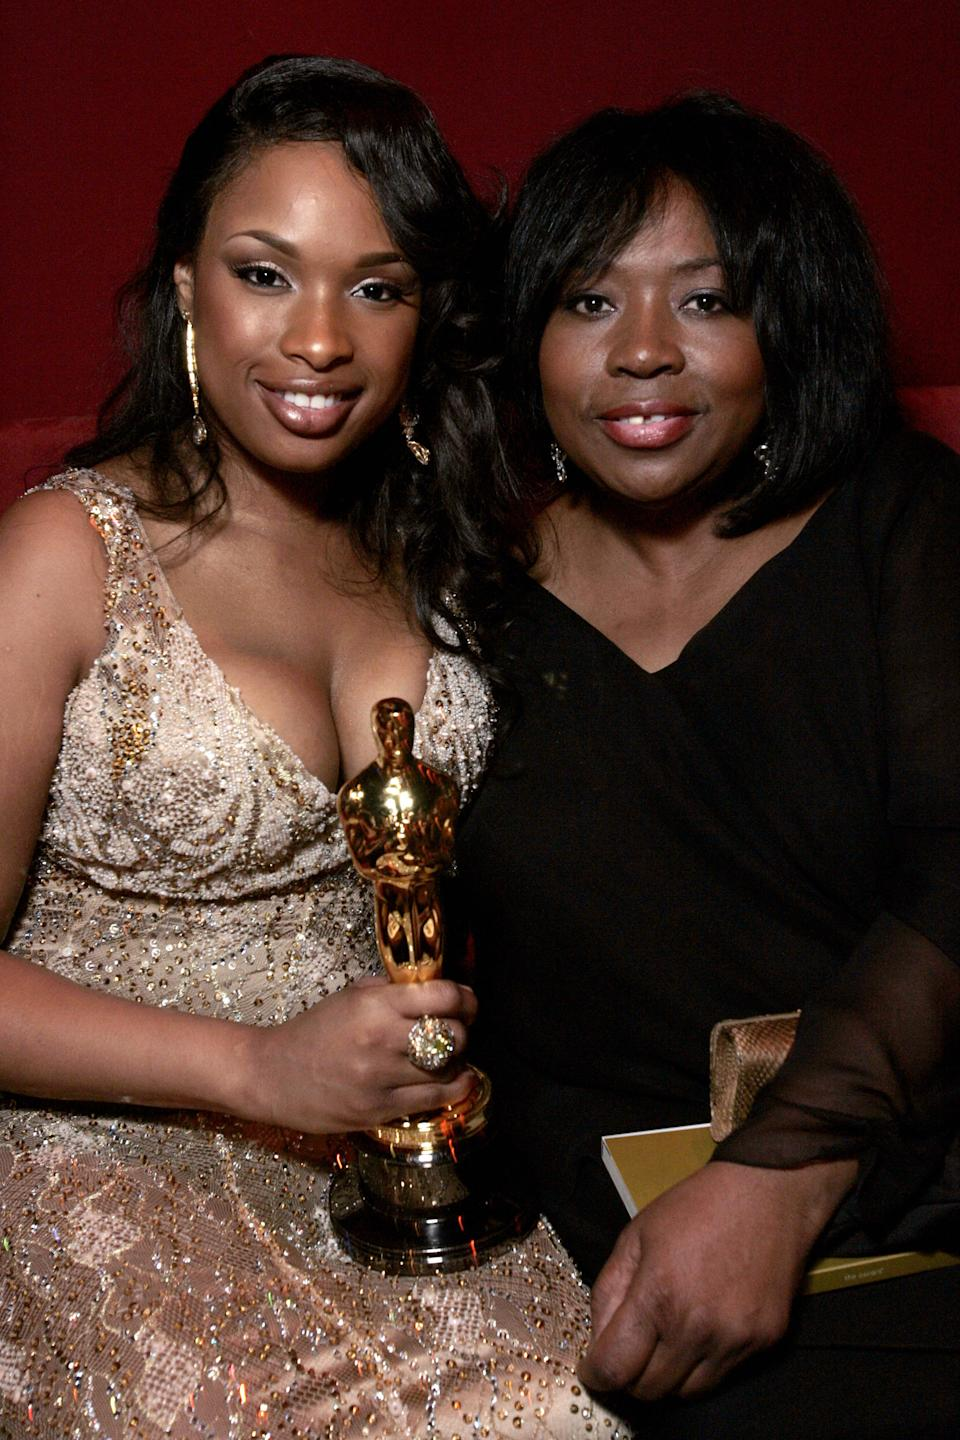 """Hollywood, UNITED STATES: Actress in a Supporting role winner Jennifer Hudson (L) and her mother Darnell Hudson (R) are pictured during the Governor's Ball following the 79th Annual Academy Awards presentations at the Kodak Theatre in Hollywood, CA, 25 February 2007. Hudson won for her role in """"Dream Girls.""""   AFP PHOTO/Gerard Burkhart (Photo credit should read GERARD BURKHART/AFP via Getty Images)"""